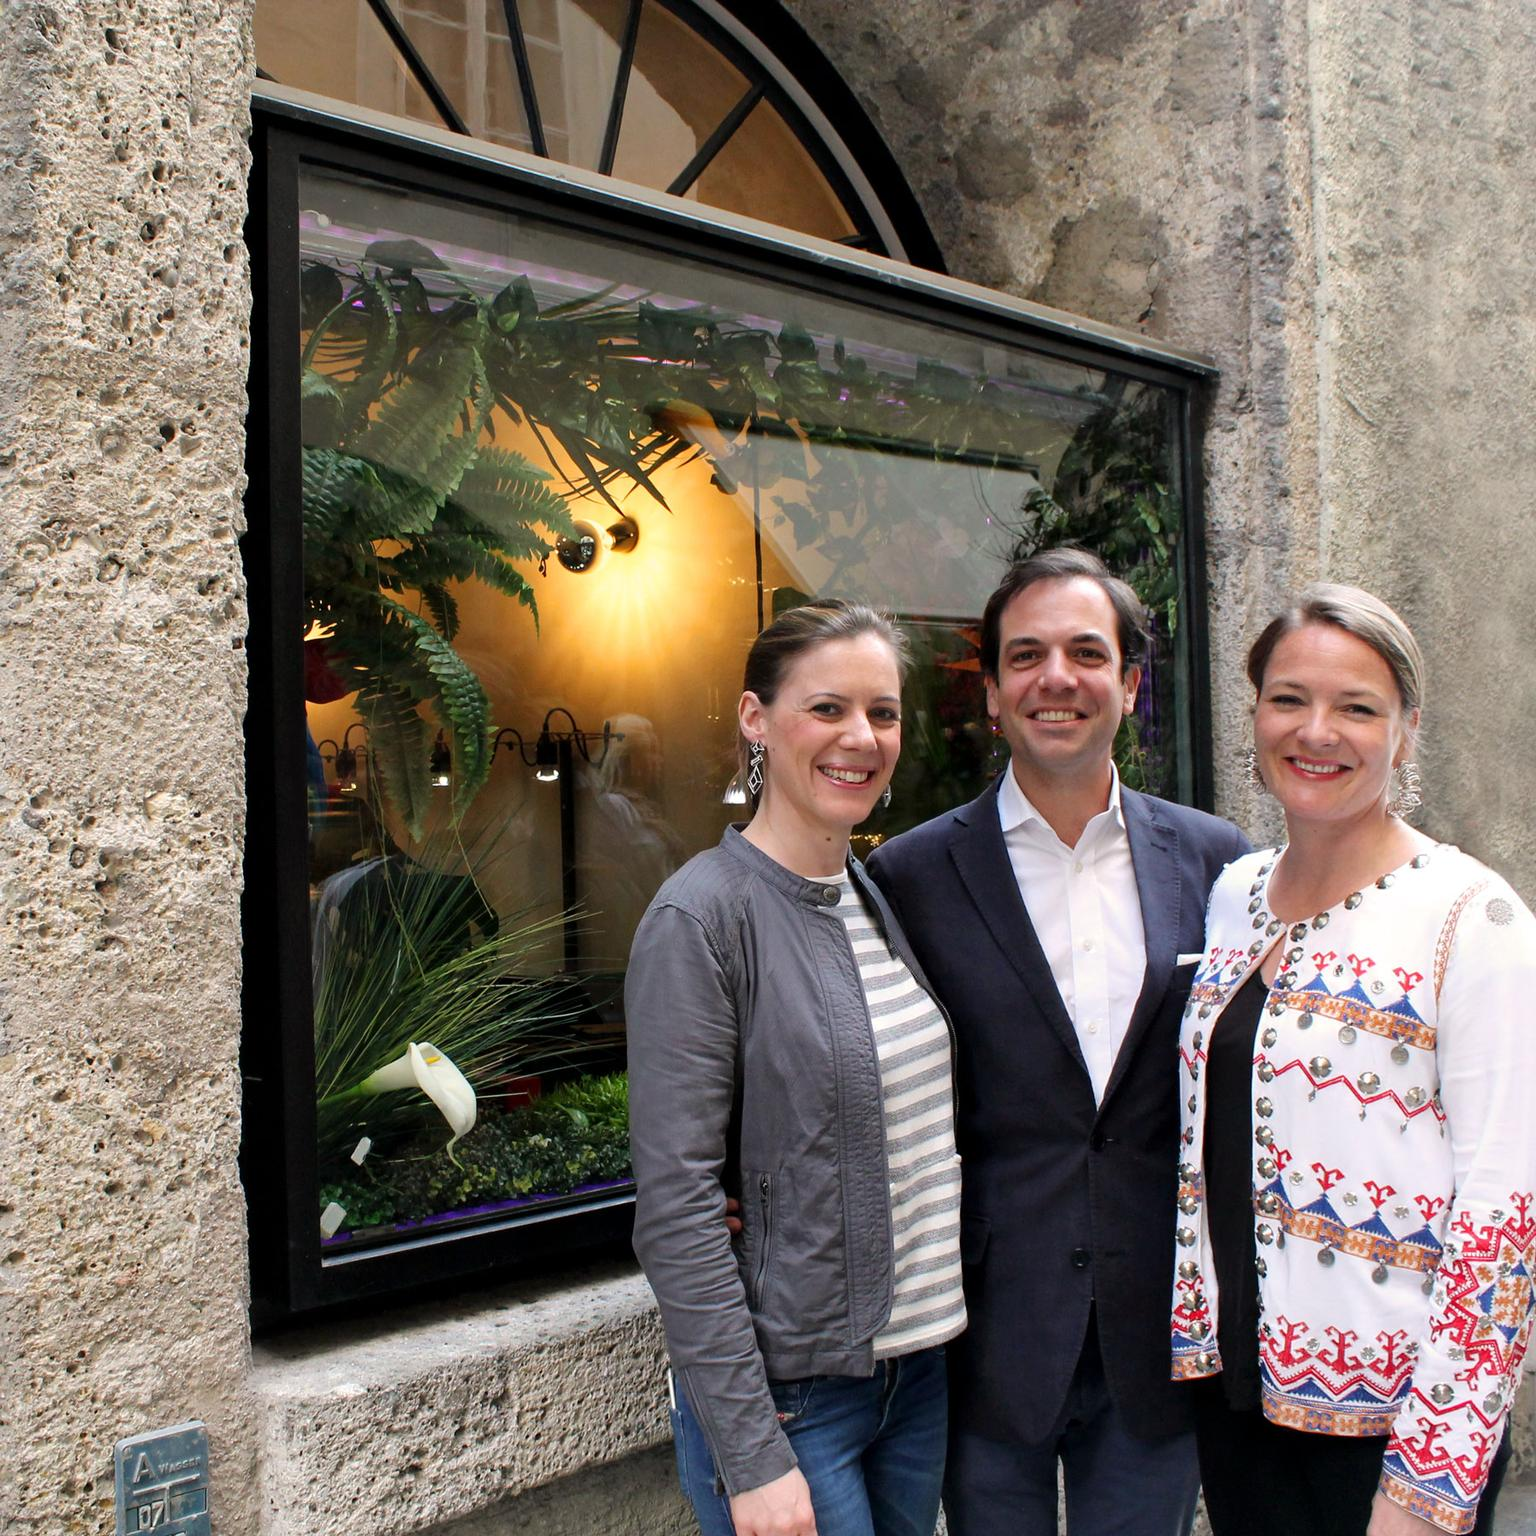 AENEA team at the Atelier showroom in Salzburg